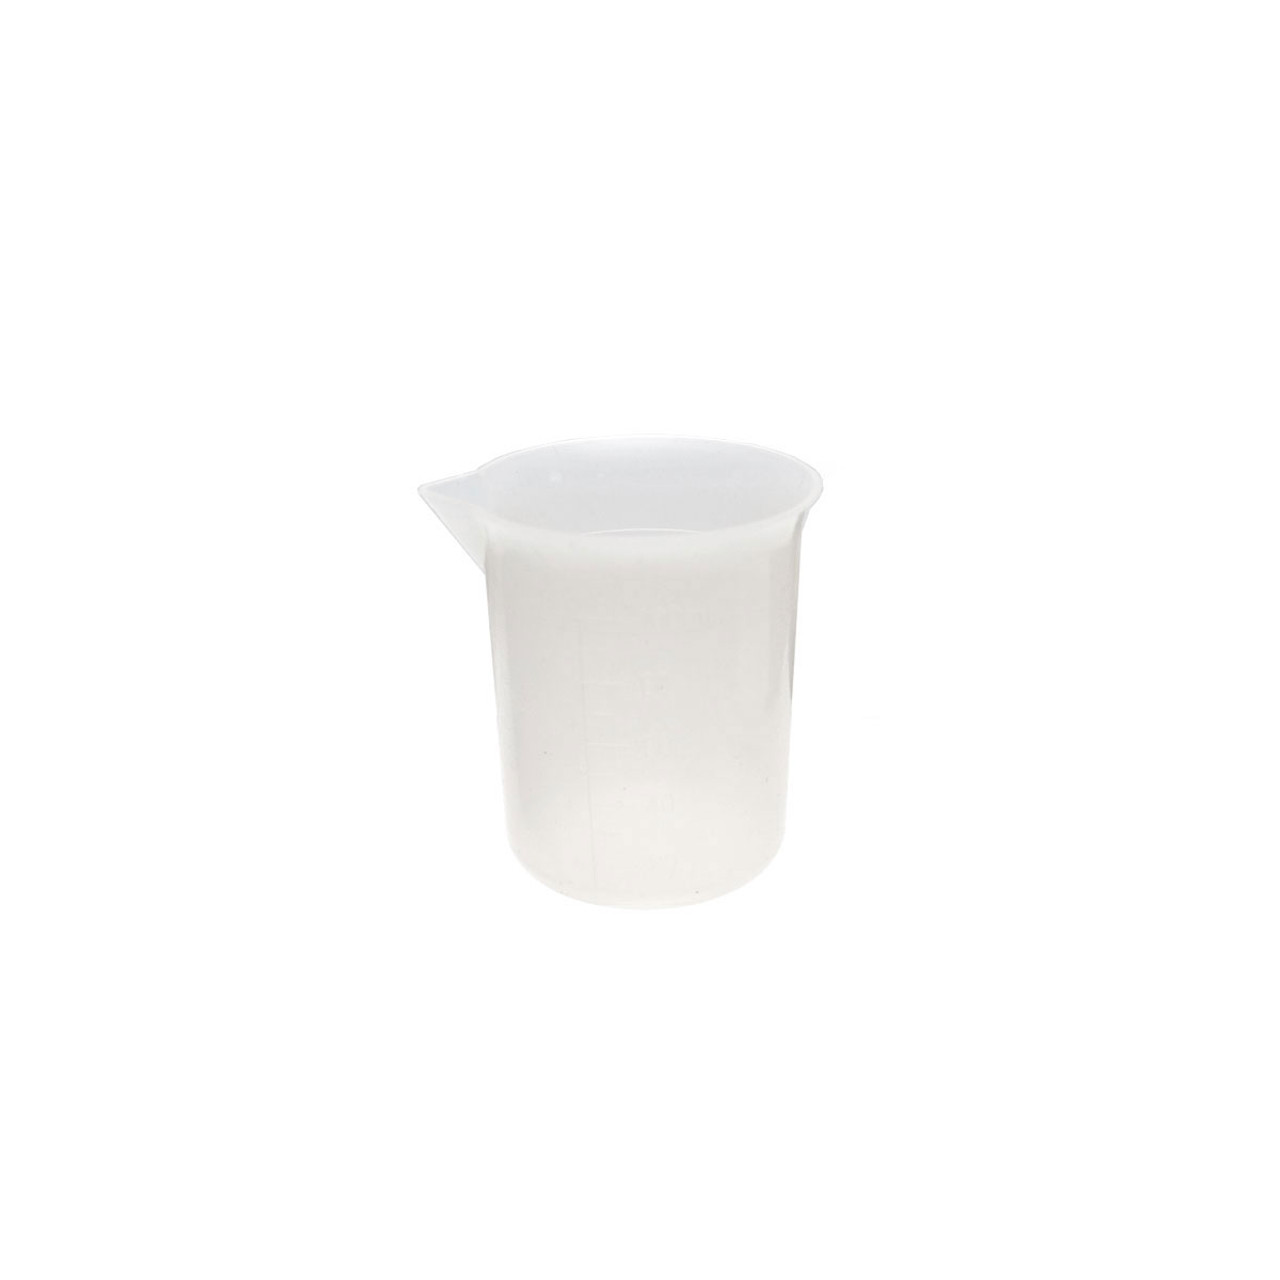 Resin Mixing/Measuring Cup - Silicone Washable & Reusable